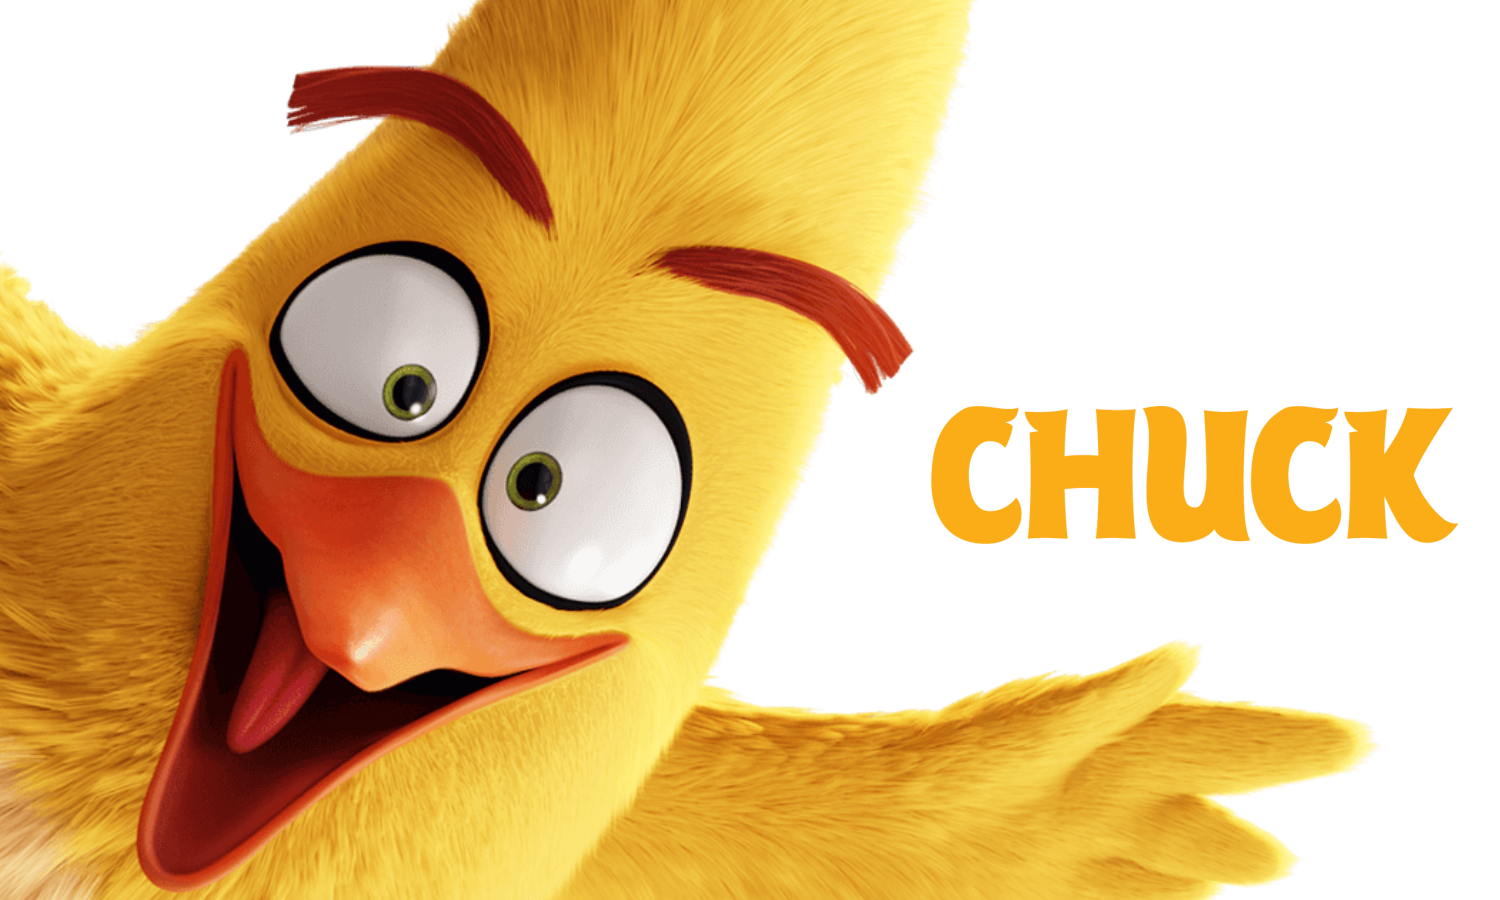 Images Of Angry Birds Characters: Plik:Chuck Angry Birds Movie Character.png